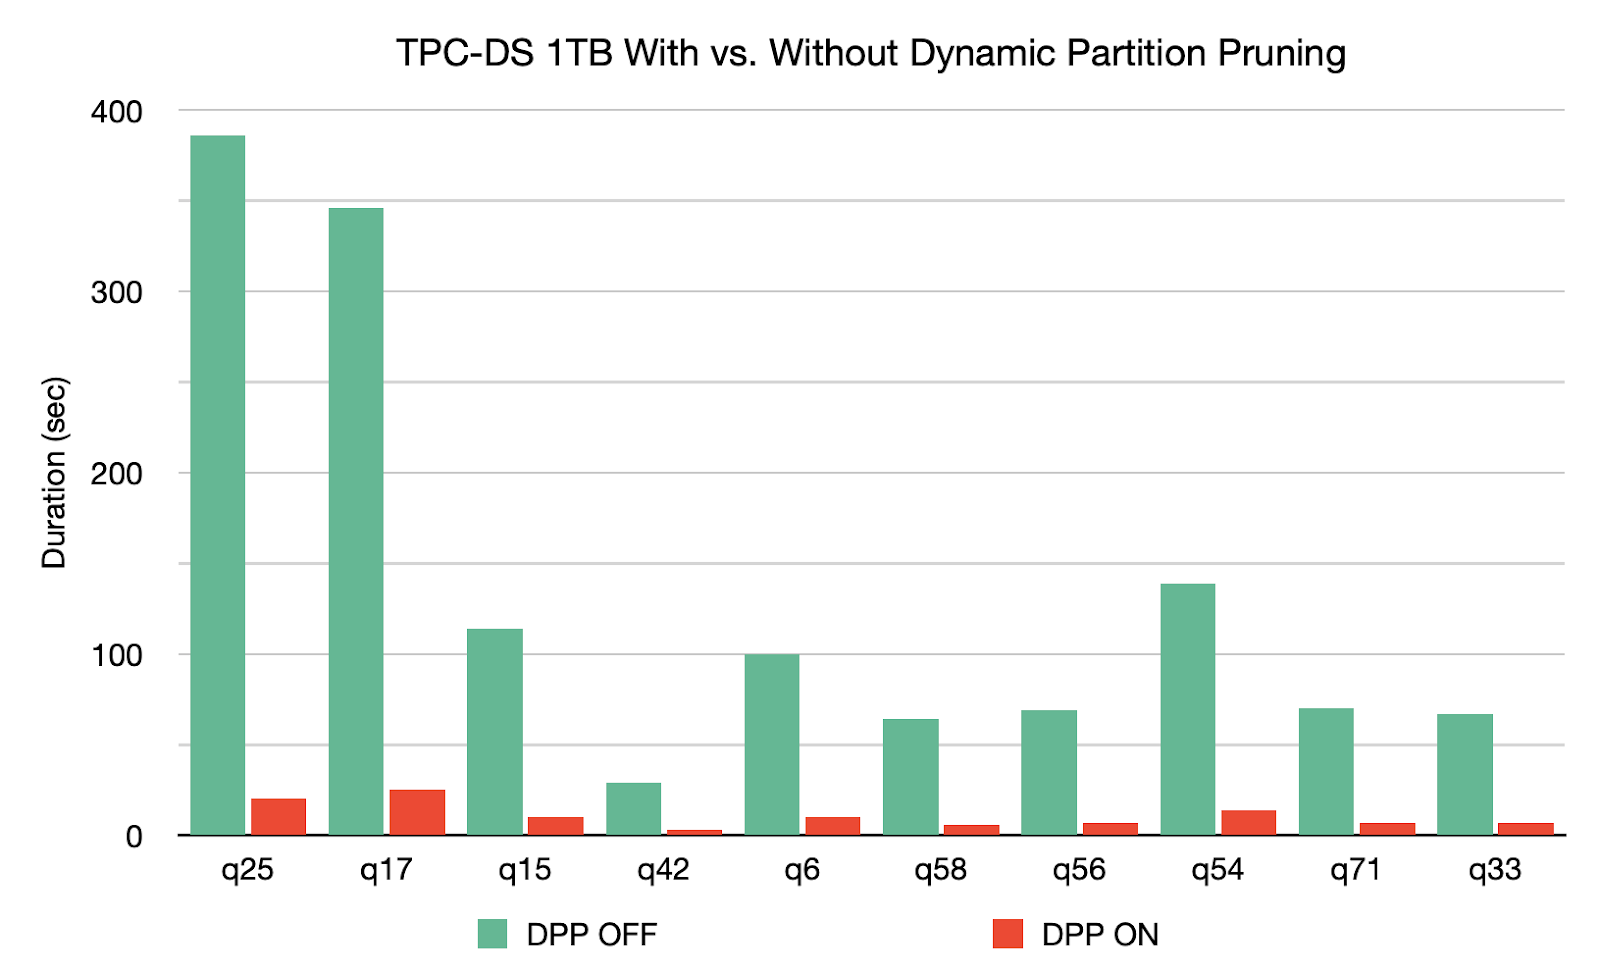 TPC-DS 1 TB with vs. without Dynamic Partition Pruning